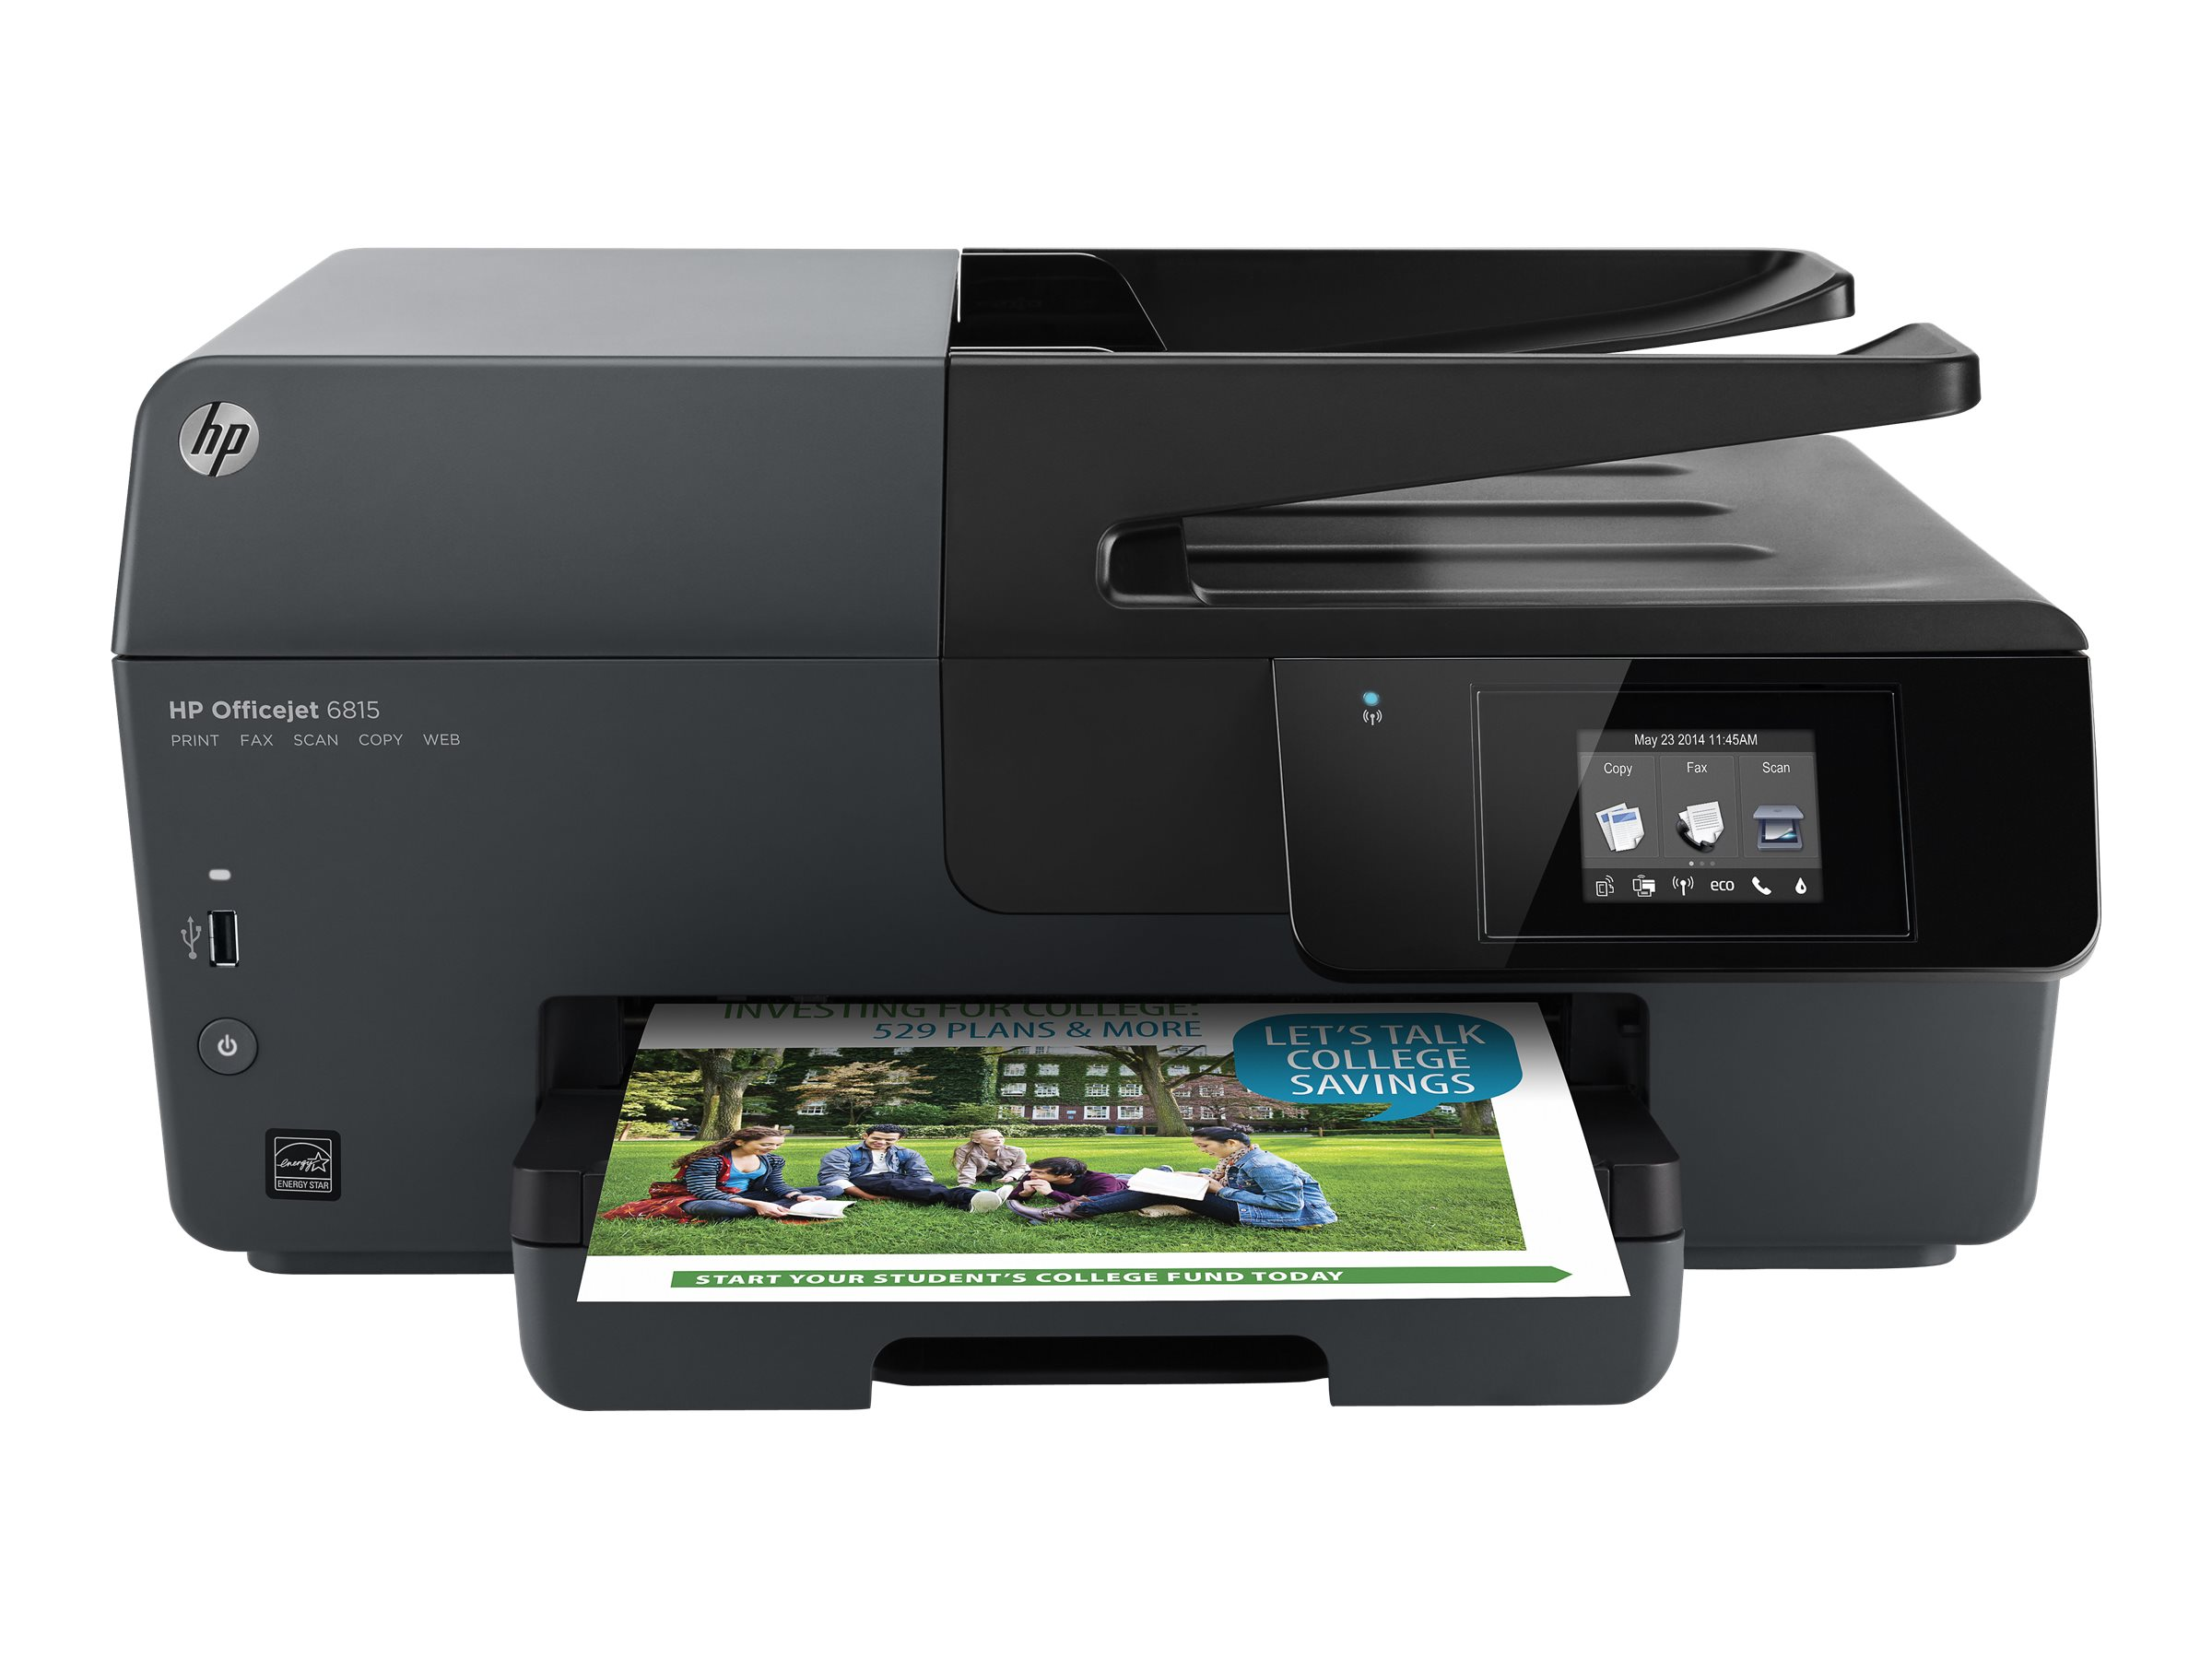 HP Officejet 6815 e-All-in-One multifunction printer (color) by HP